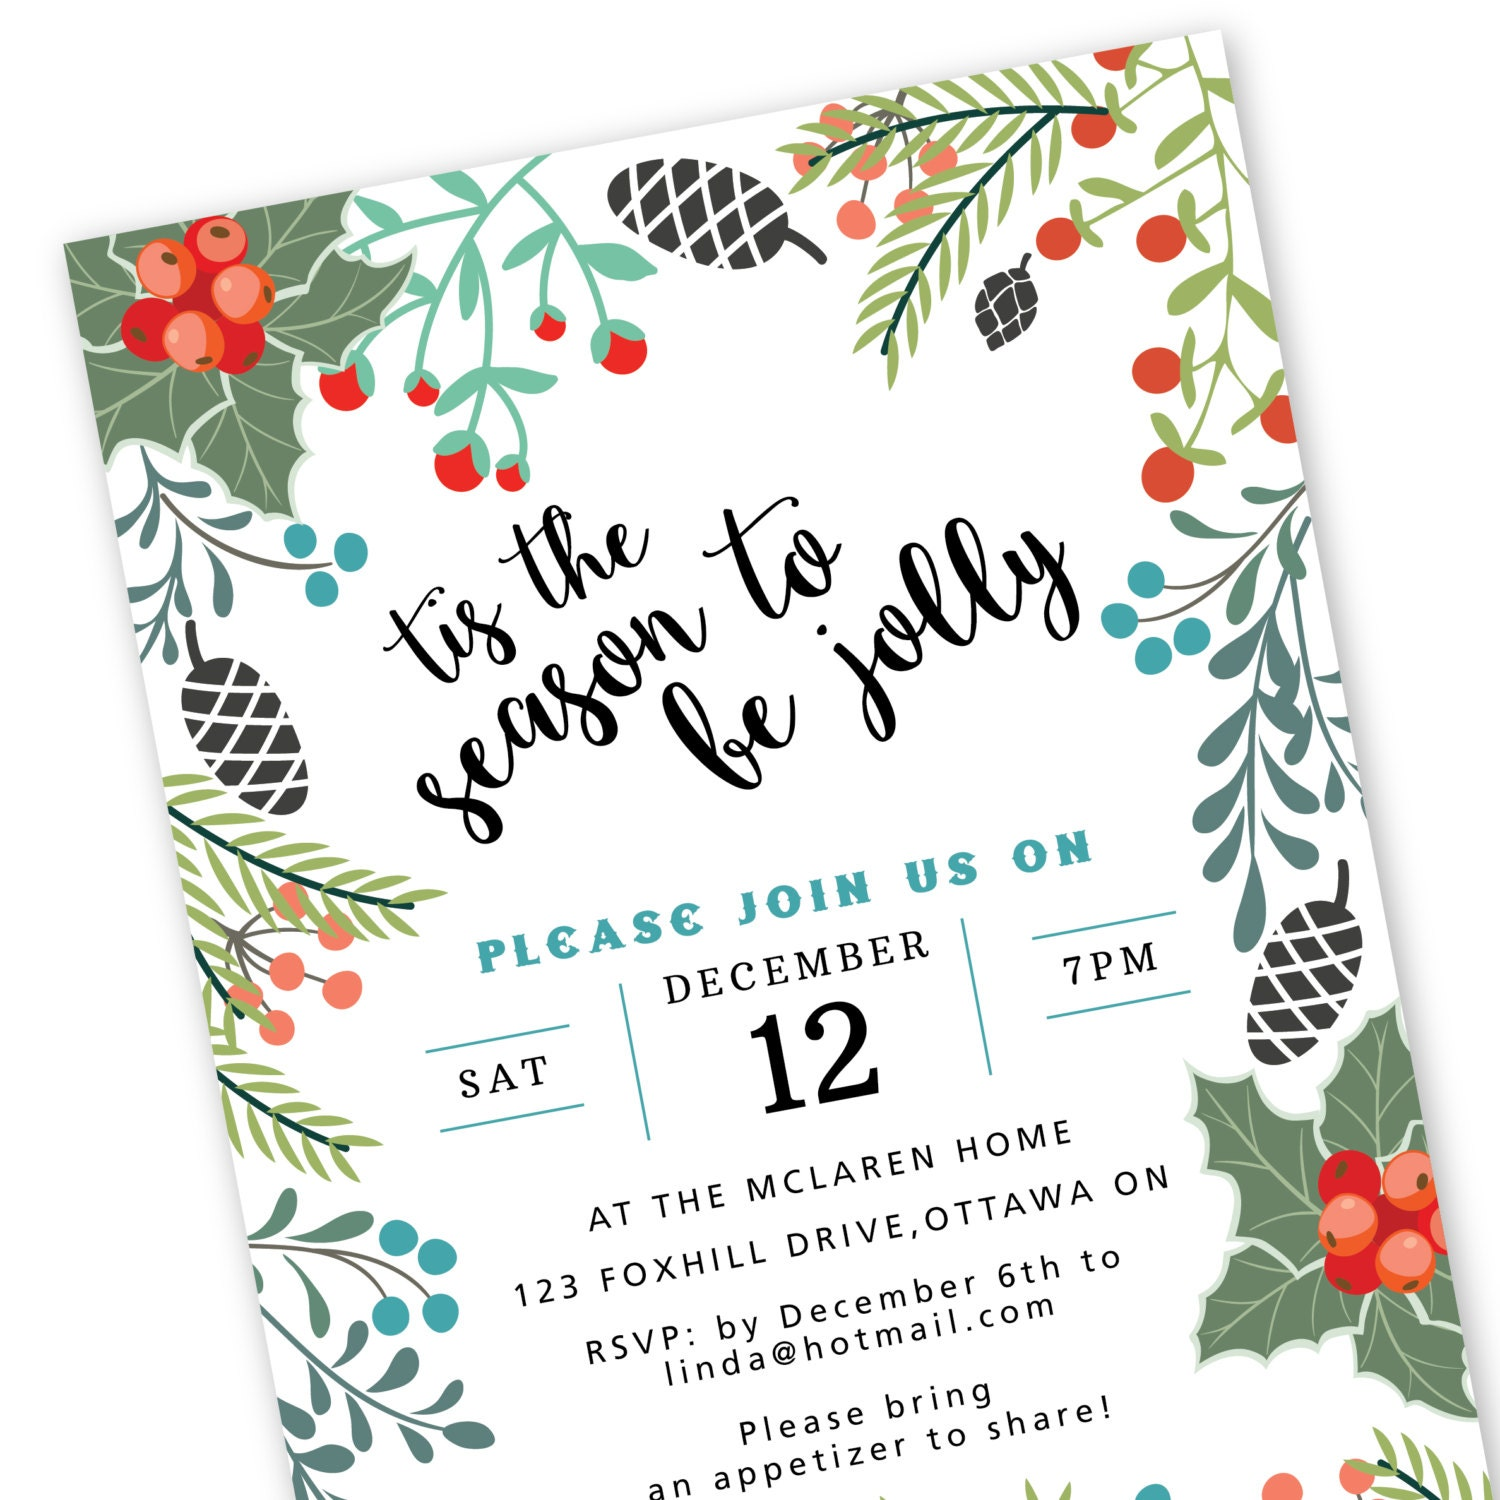 holiday party invitation christmas party invitation christmas printable holiday invitation woodland holiday invite gallery photo gallery photo gallery photo gallery photo gallery photo